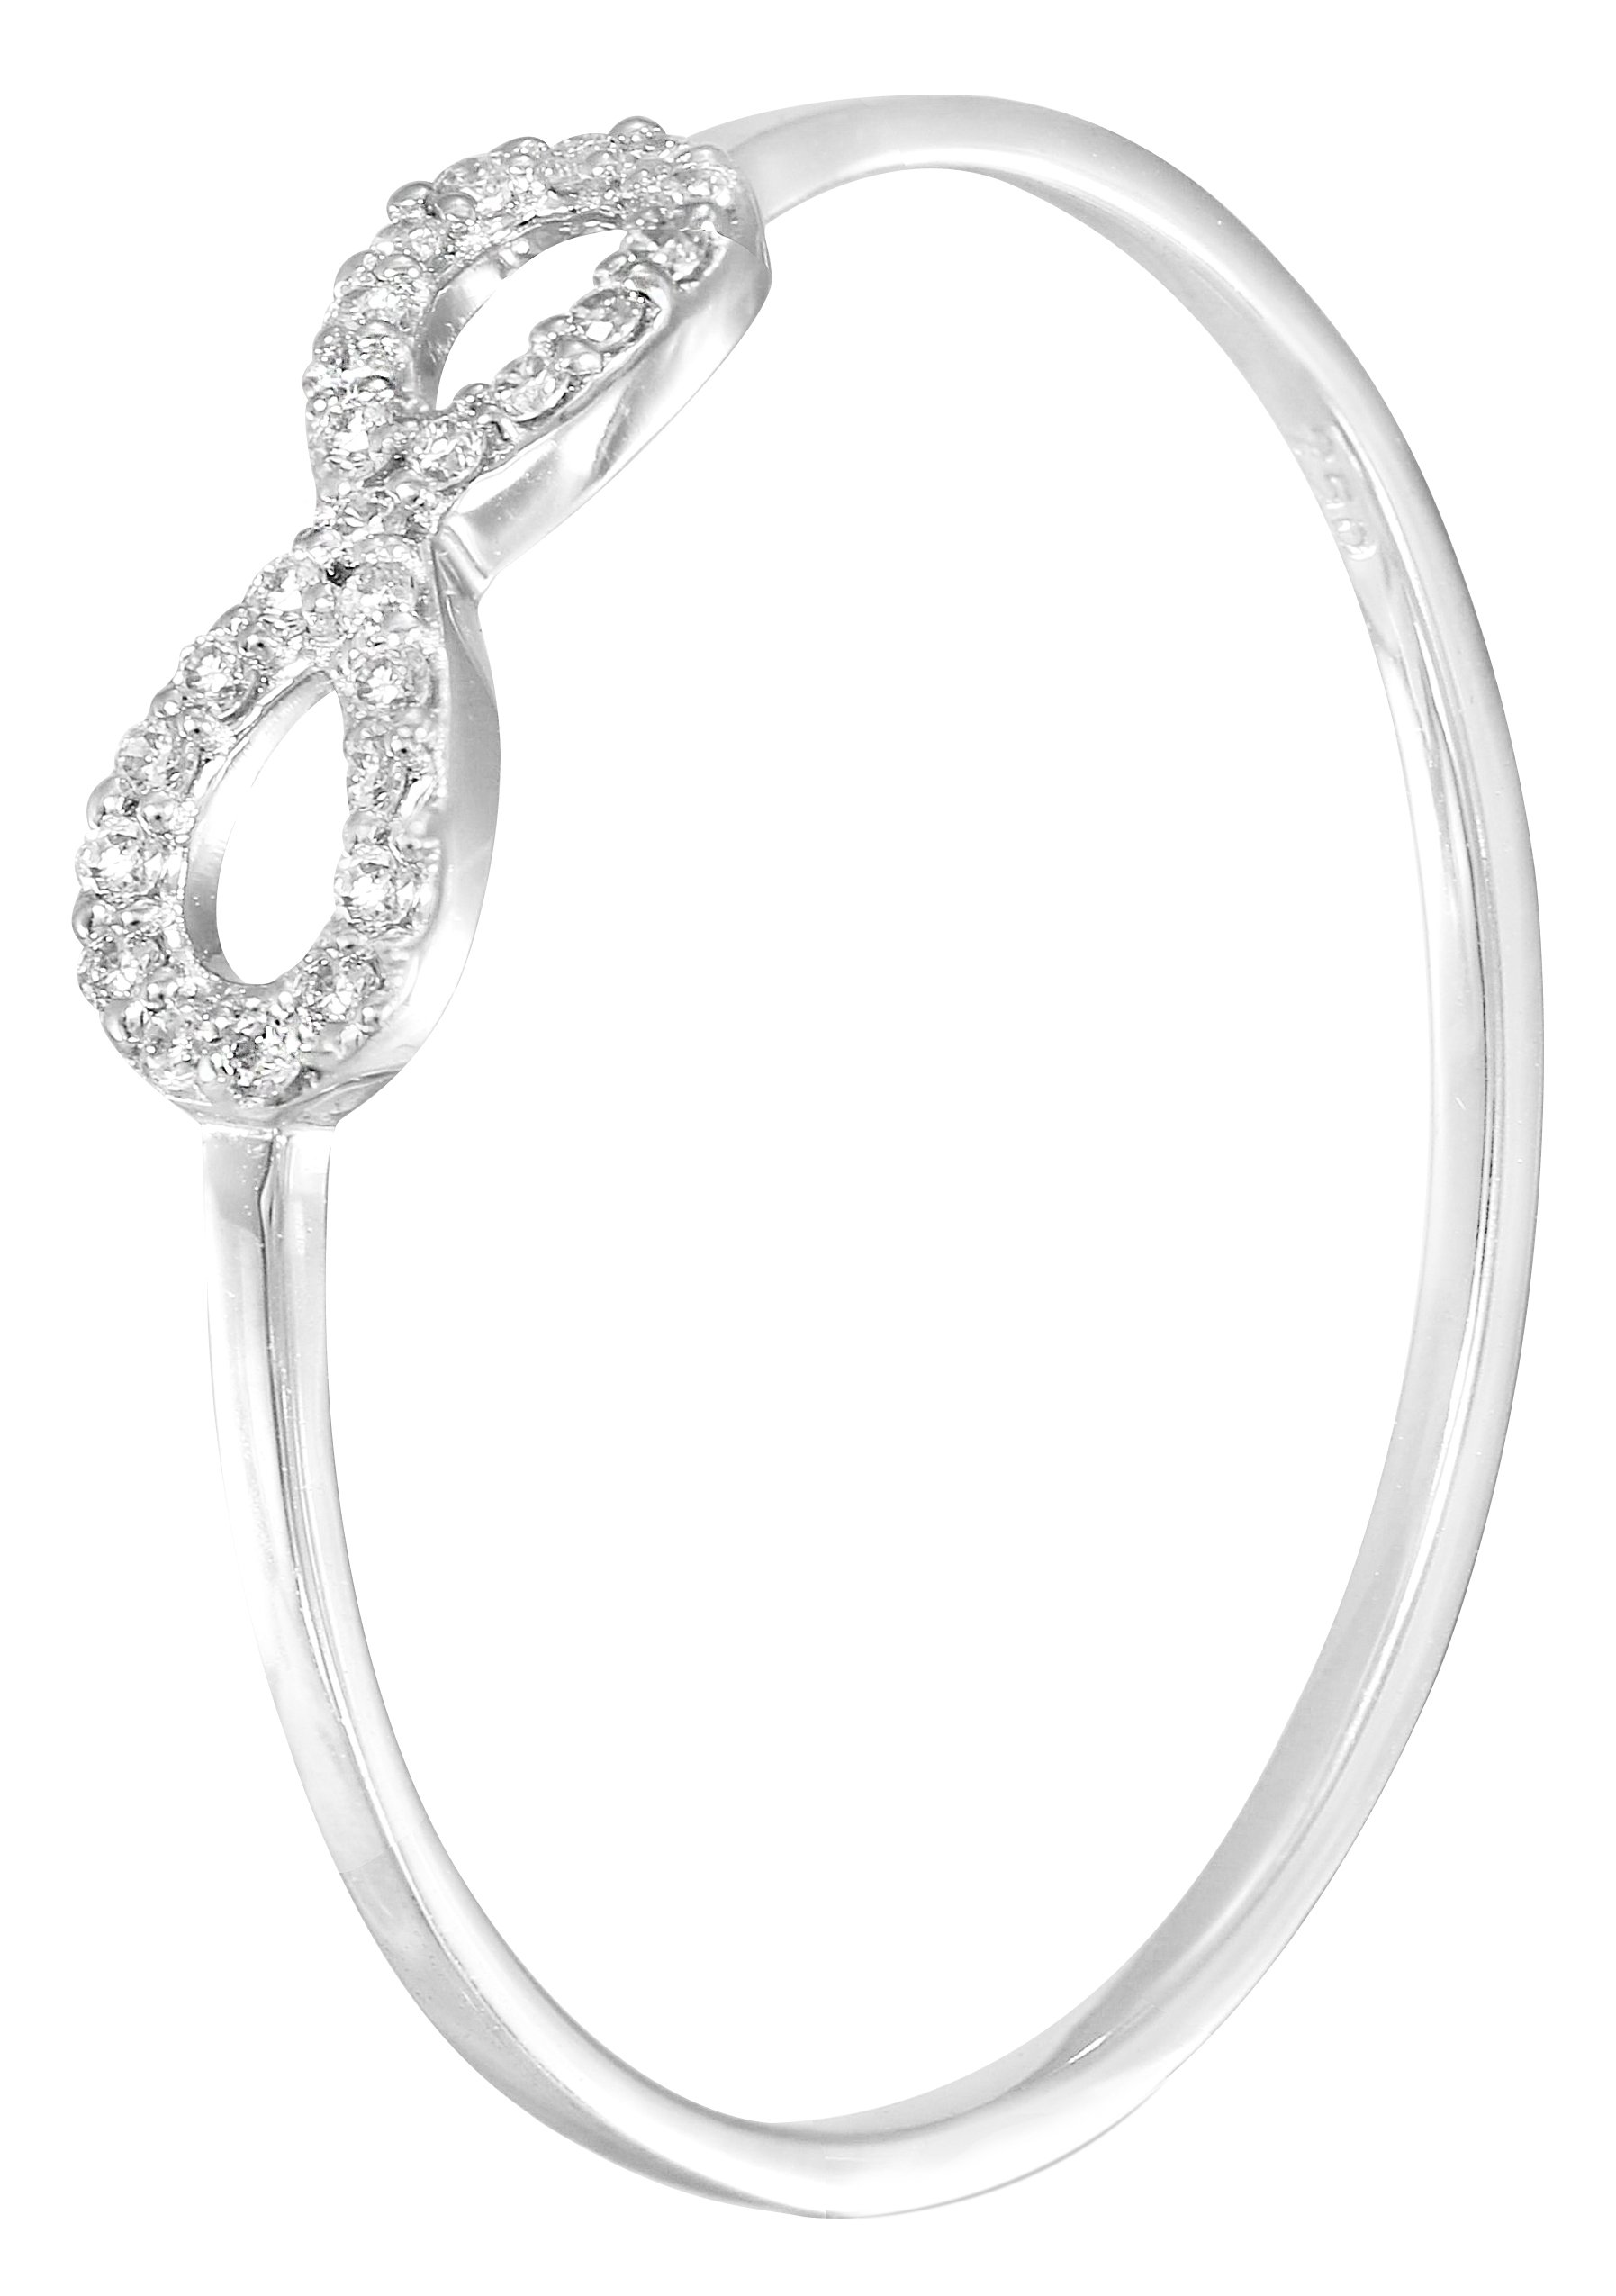 10k White Gold Natural Diamond Infinity Dainty Anniversary Ring (0.06 cttw, G-H Color) (Size 7)